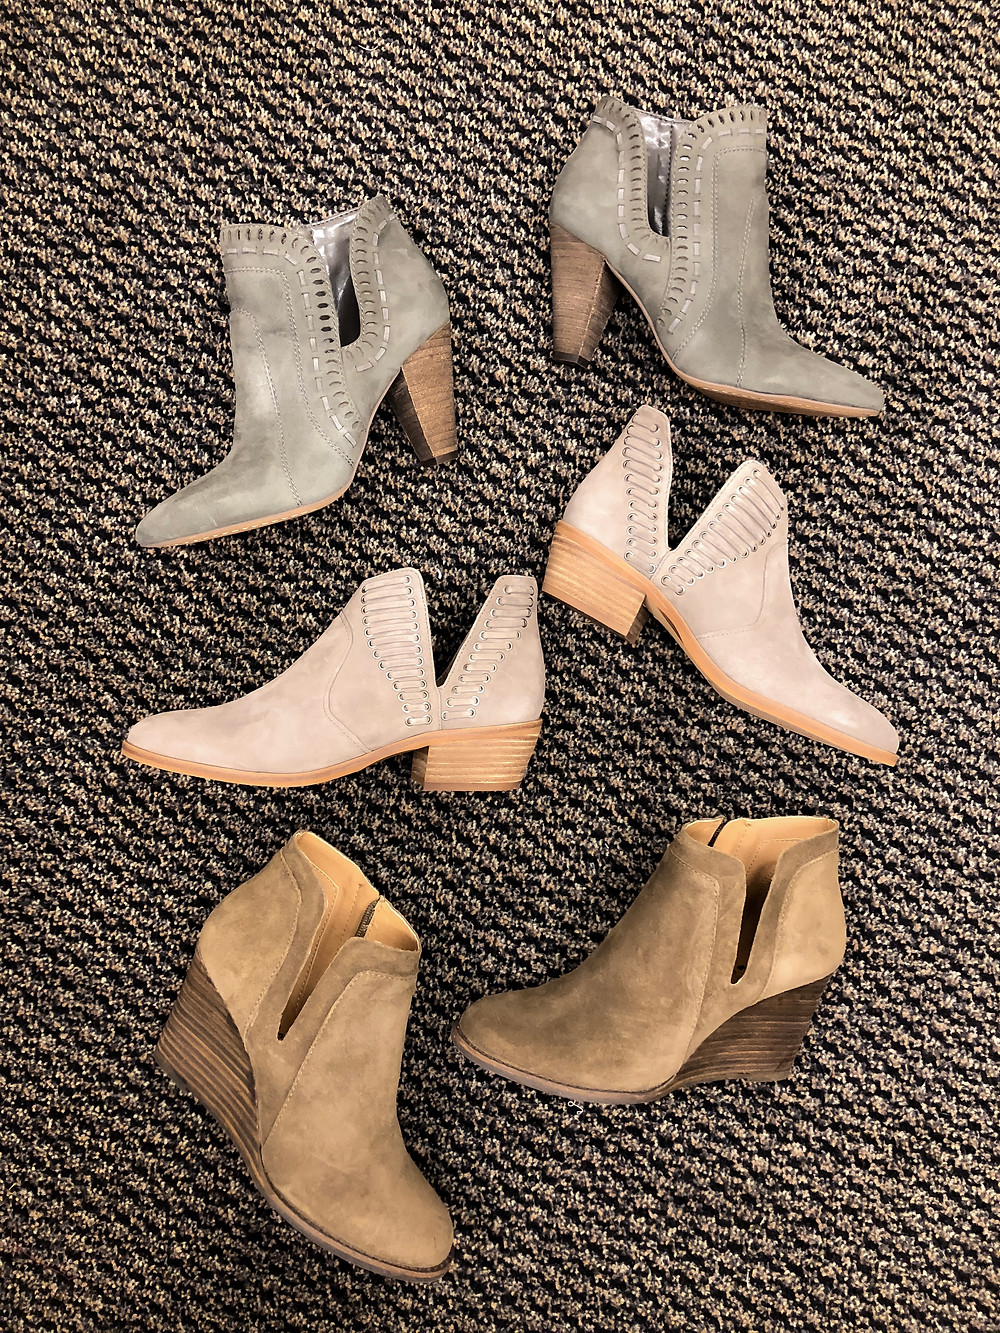 BOOTIES FROM NORDSTROM SALE